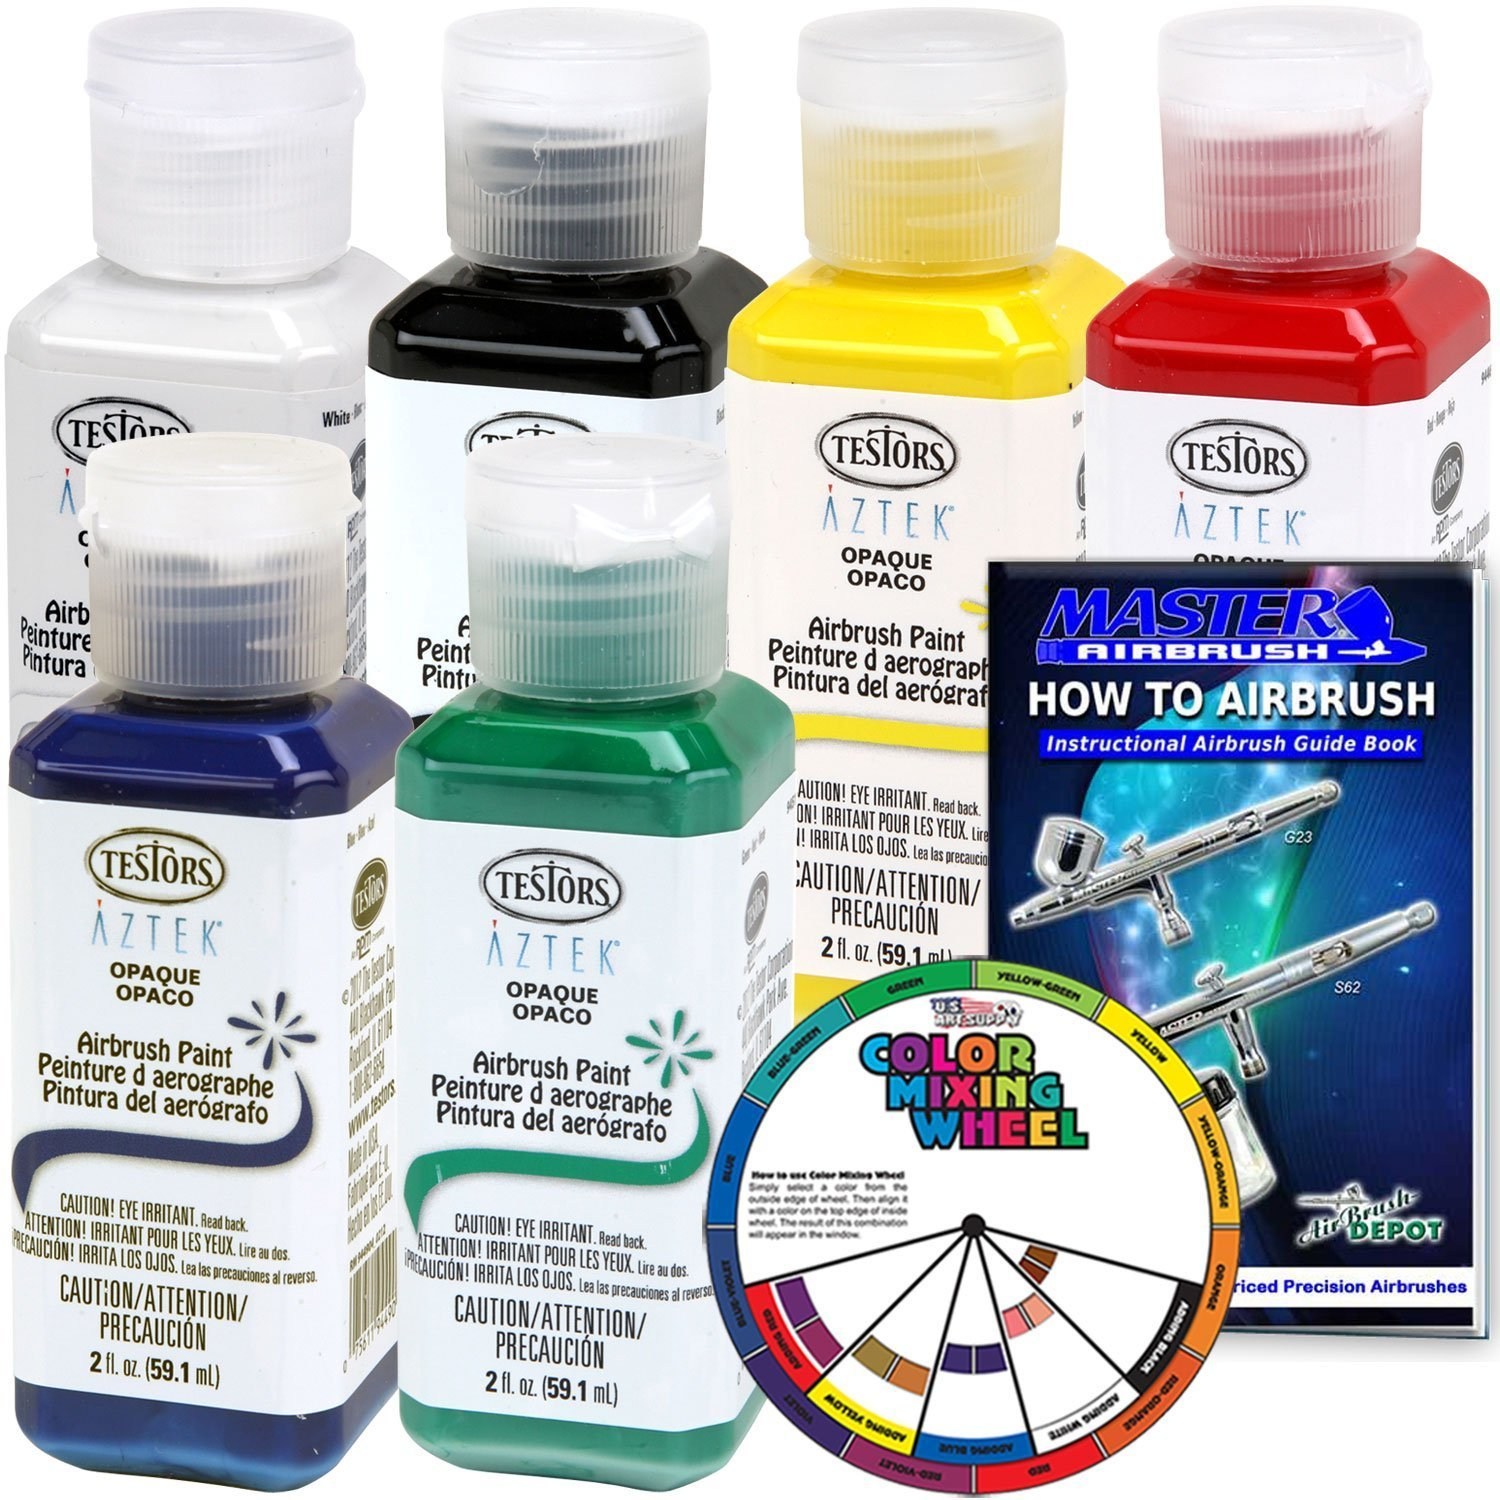 6 Color Testors Aztek Premium Opaque Semi Gloss Acrylic Airbrush Paint Set With Color Mixing Wheel And How To Airbrush Manual